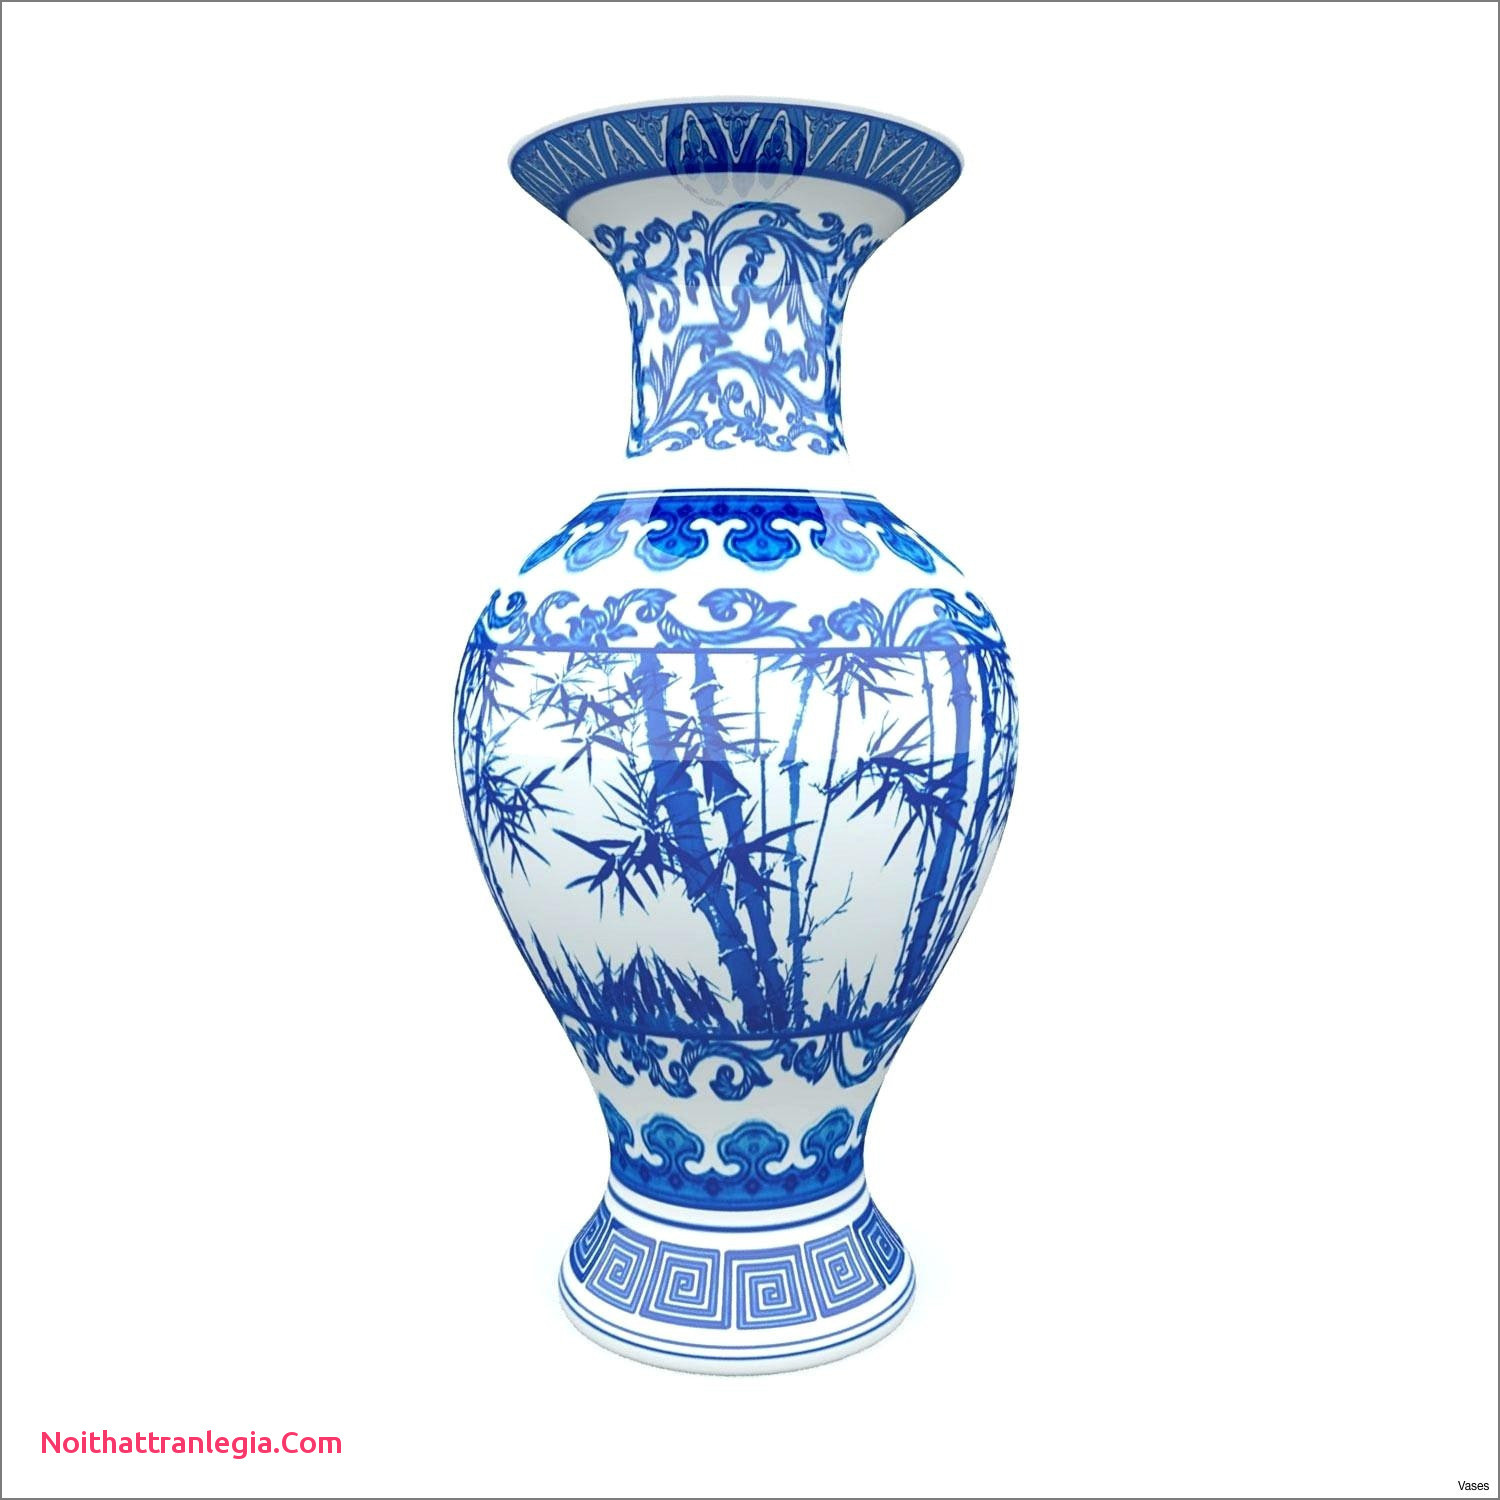 blue ceramic vase of 20 chinese antique vase noithattranlegia vases design with antique table lamp markings new chinese dynasty vase markings lamp base ceramic art historyh vases